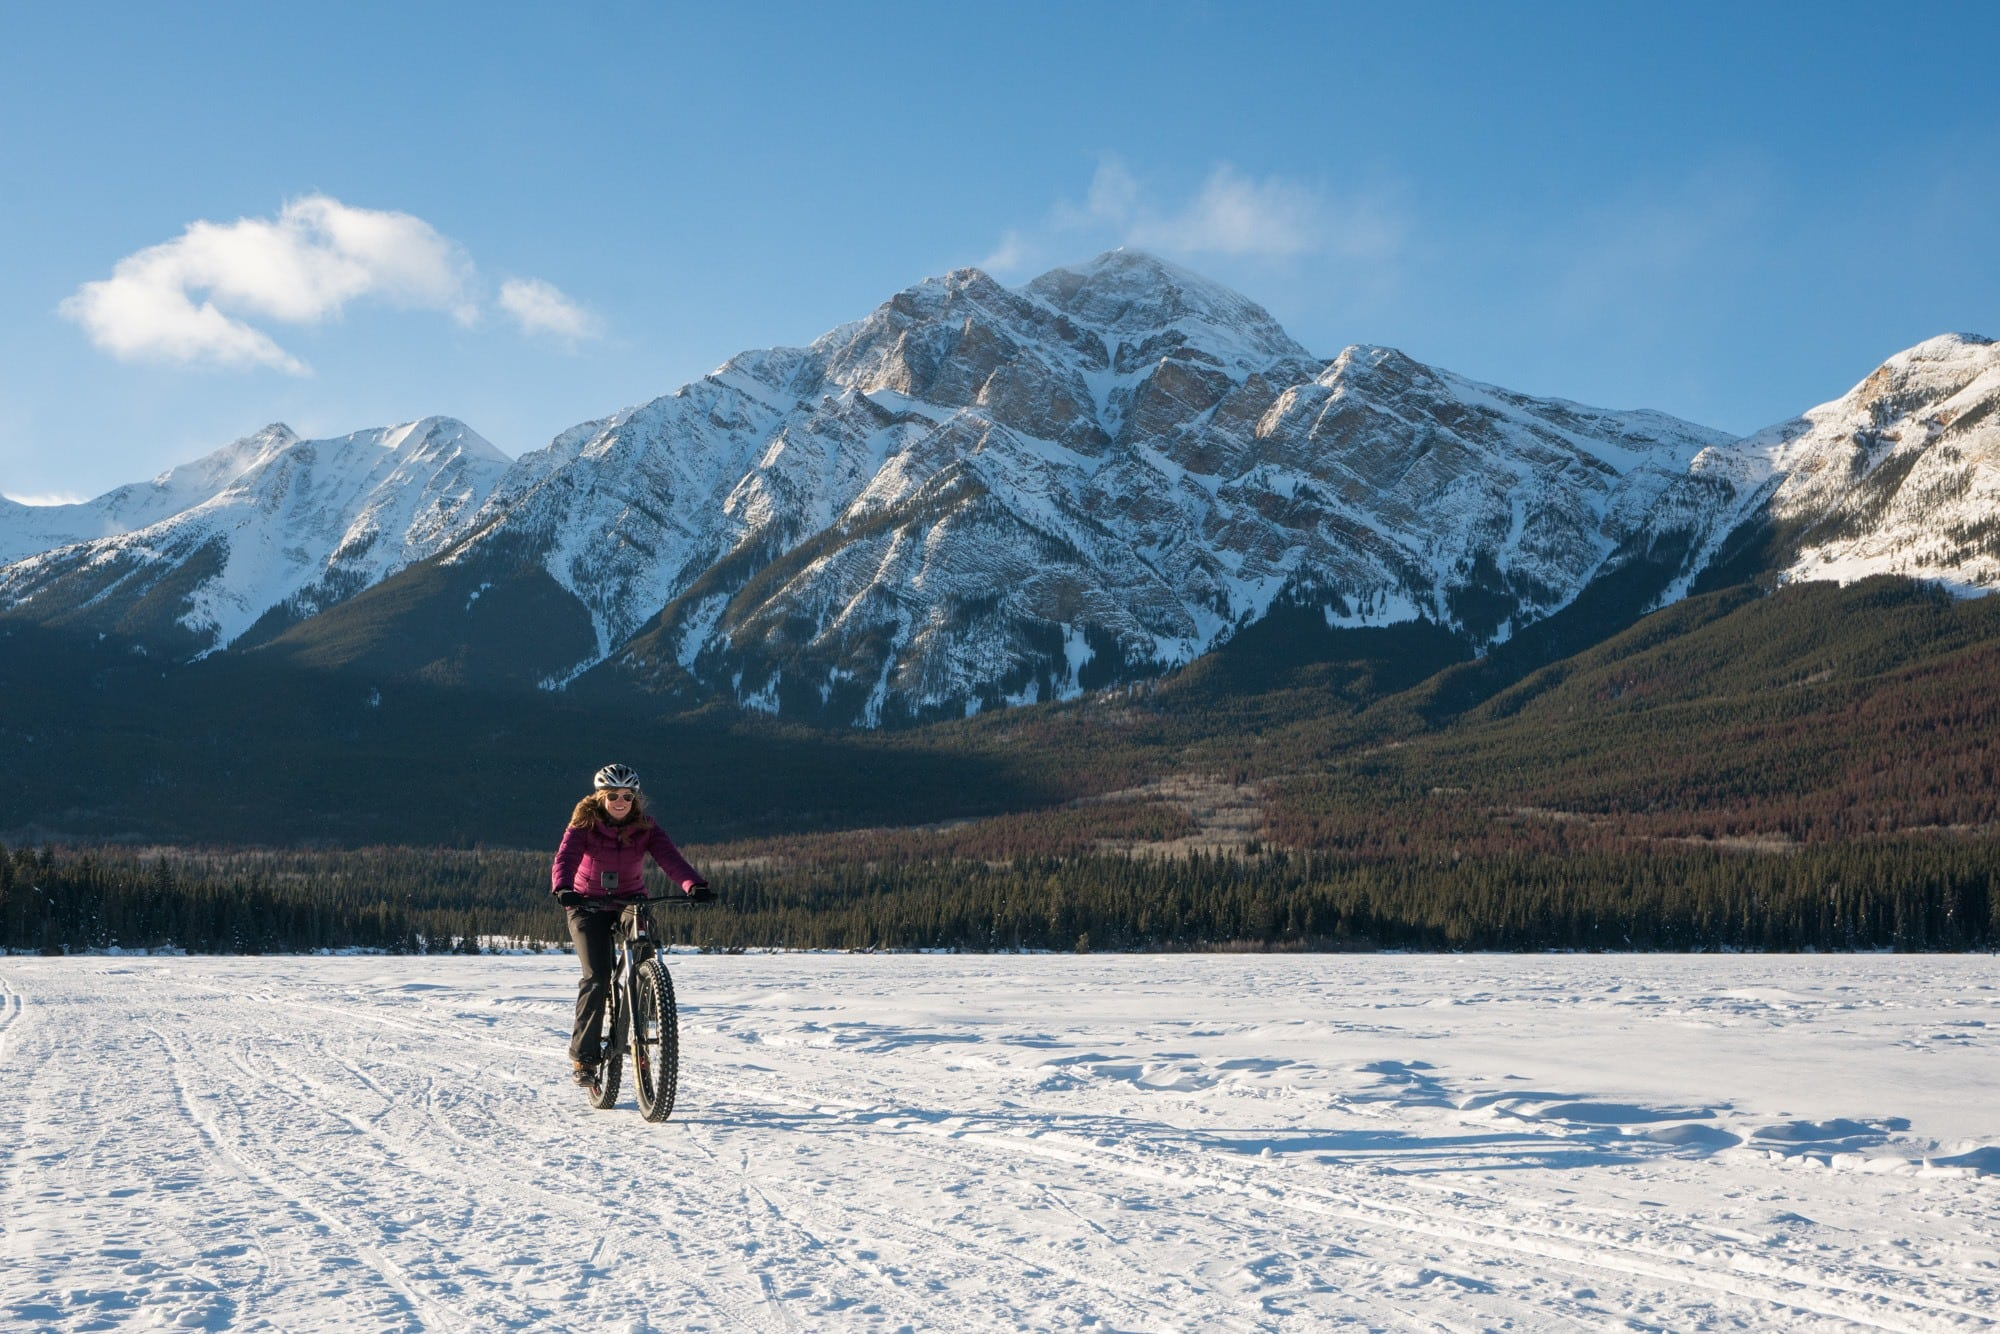 Fat Biking on Pyramid Lake // Plan the ultimate winter getaway in the Canadian Rockies. This 4-day Jasper National Park winter itinerary gives you an adventurous day-by-day plan, plus info on how to get to Jasper, the best restaurants & where to stay.